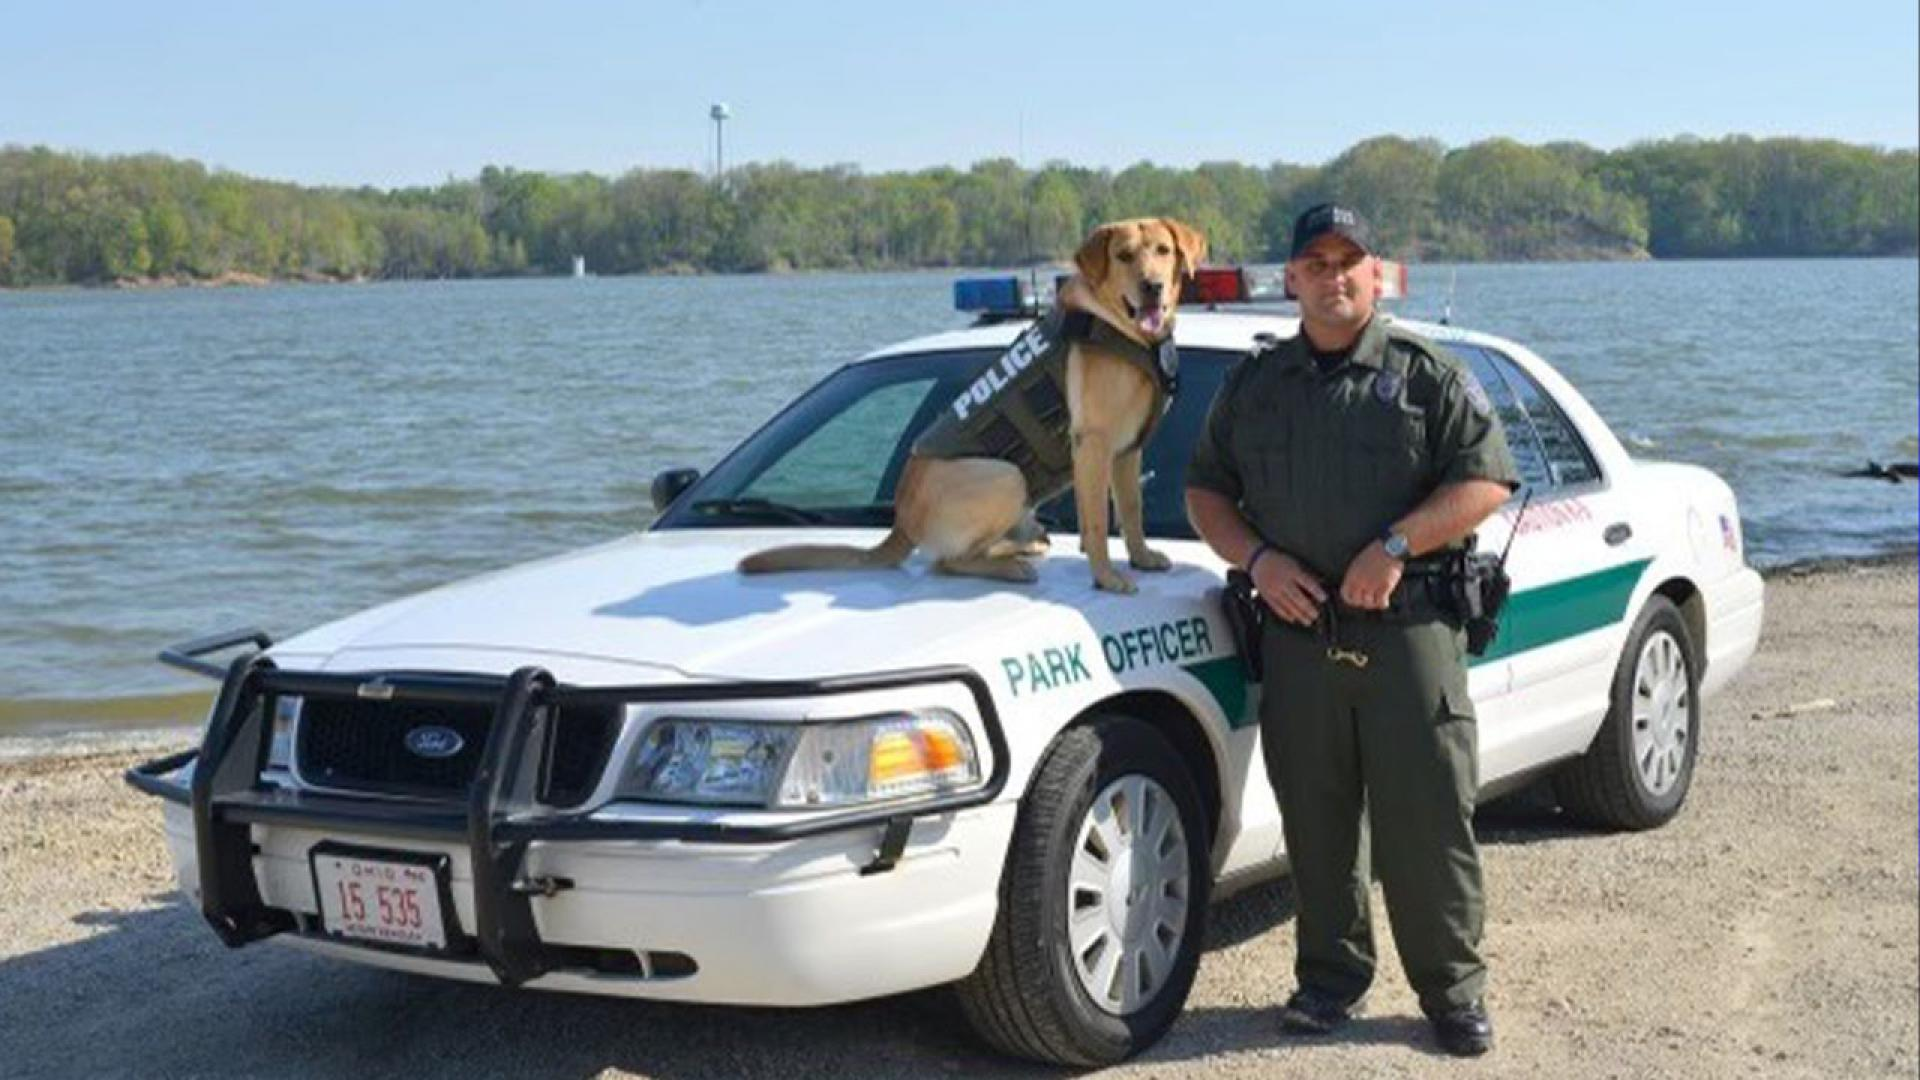 ODNR Officer Jason Lagore and his special K-9 companion